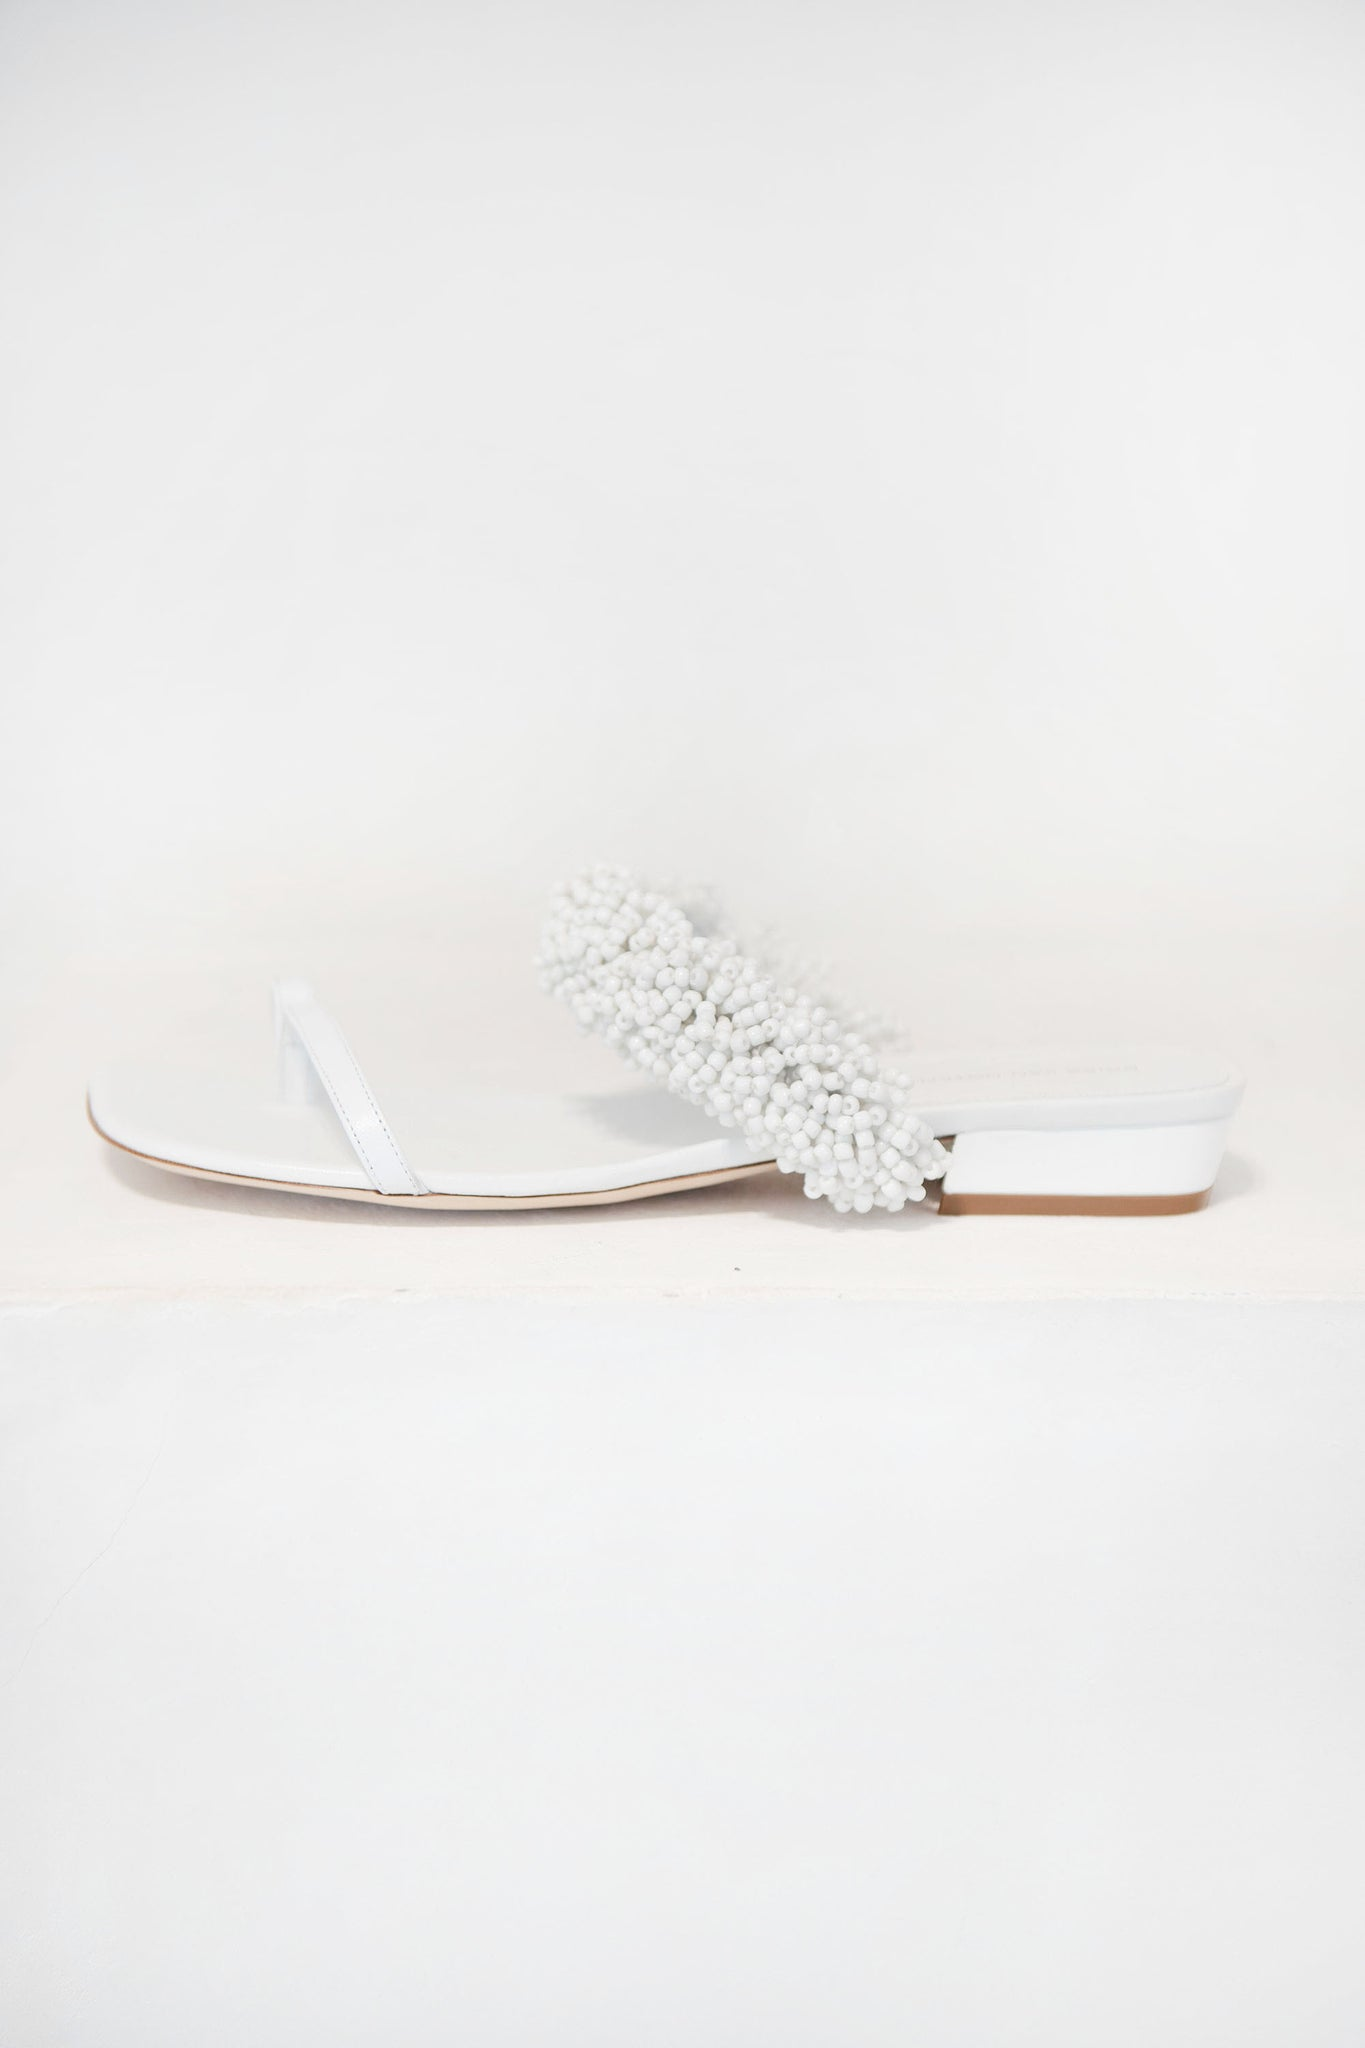 DRIES VAN NOTEN - sandal, white